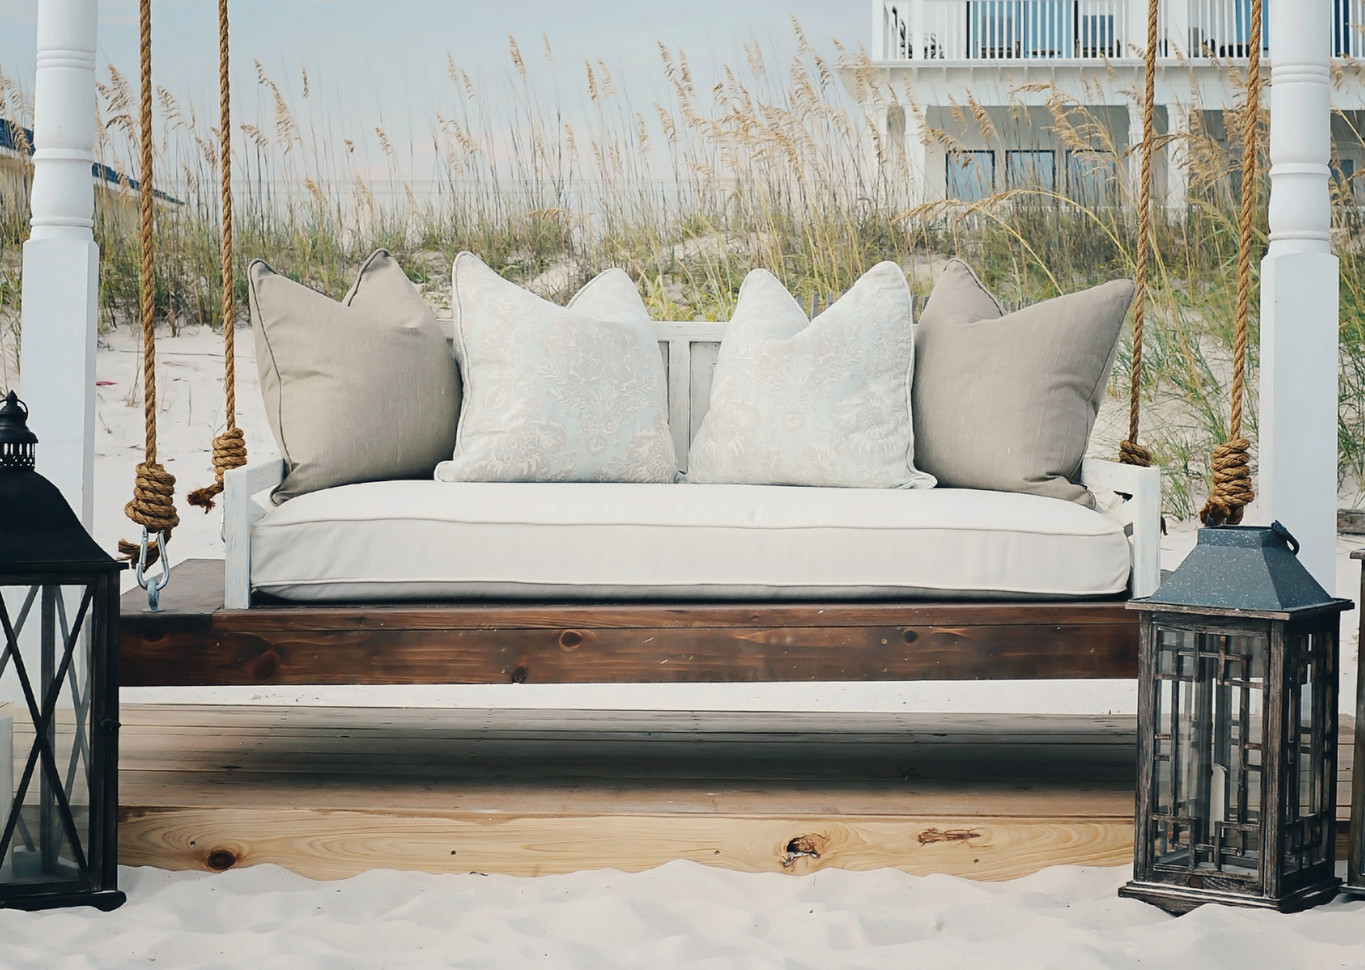 Porch Swing Bed Cushions7